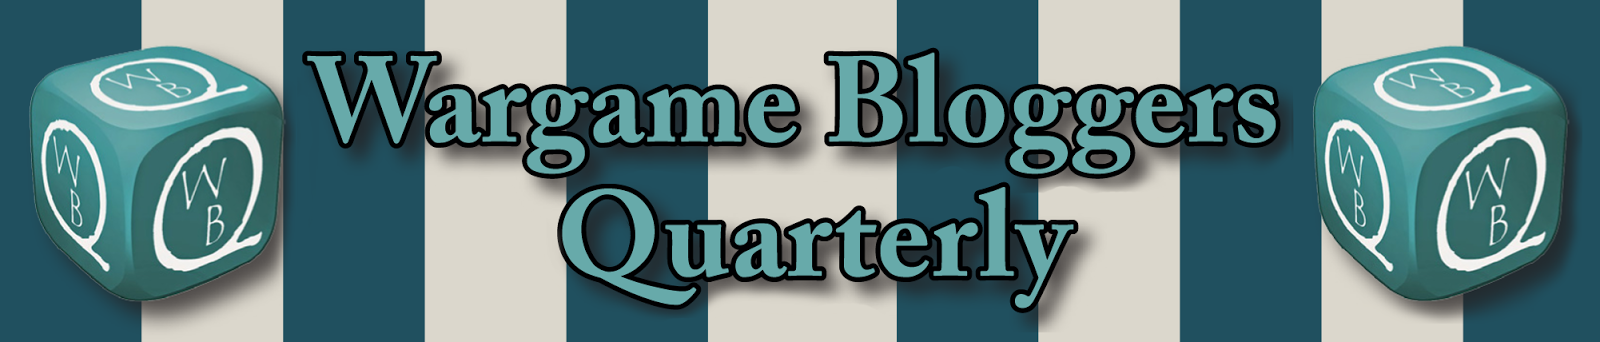 Wargame Bloggers Quarterly Facebook Page